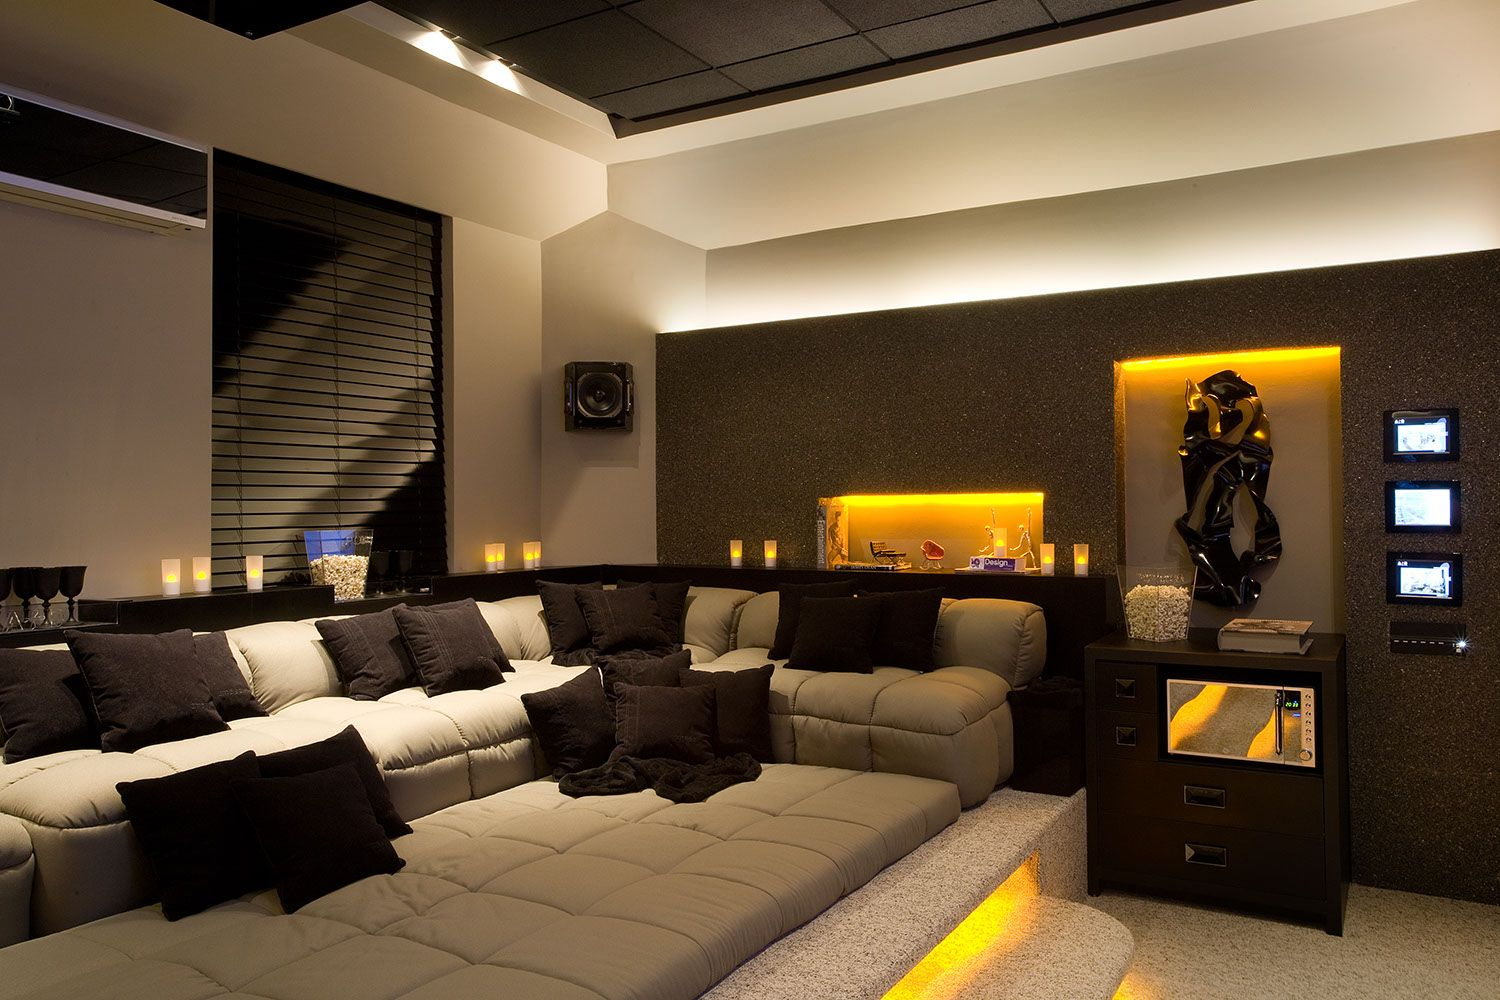 wonderful home theater decor picture 731 - Home Theater Room Design Ideas